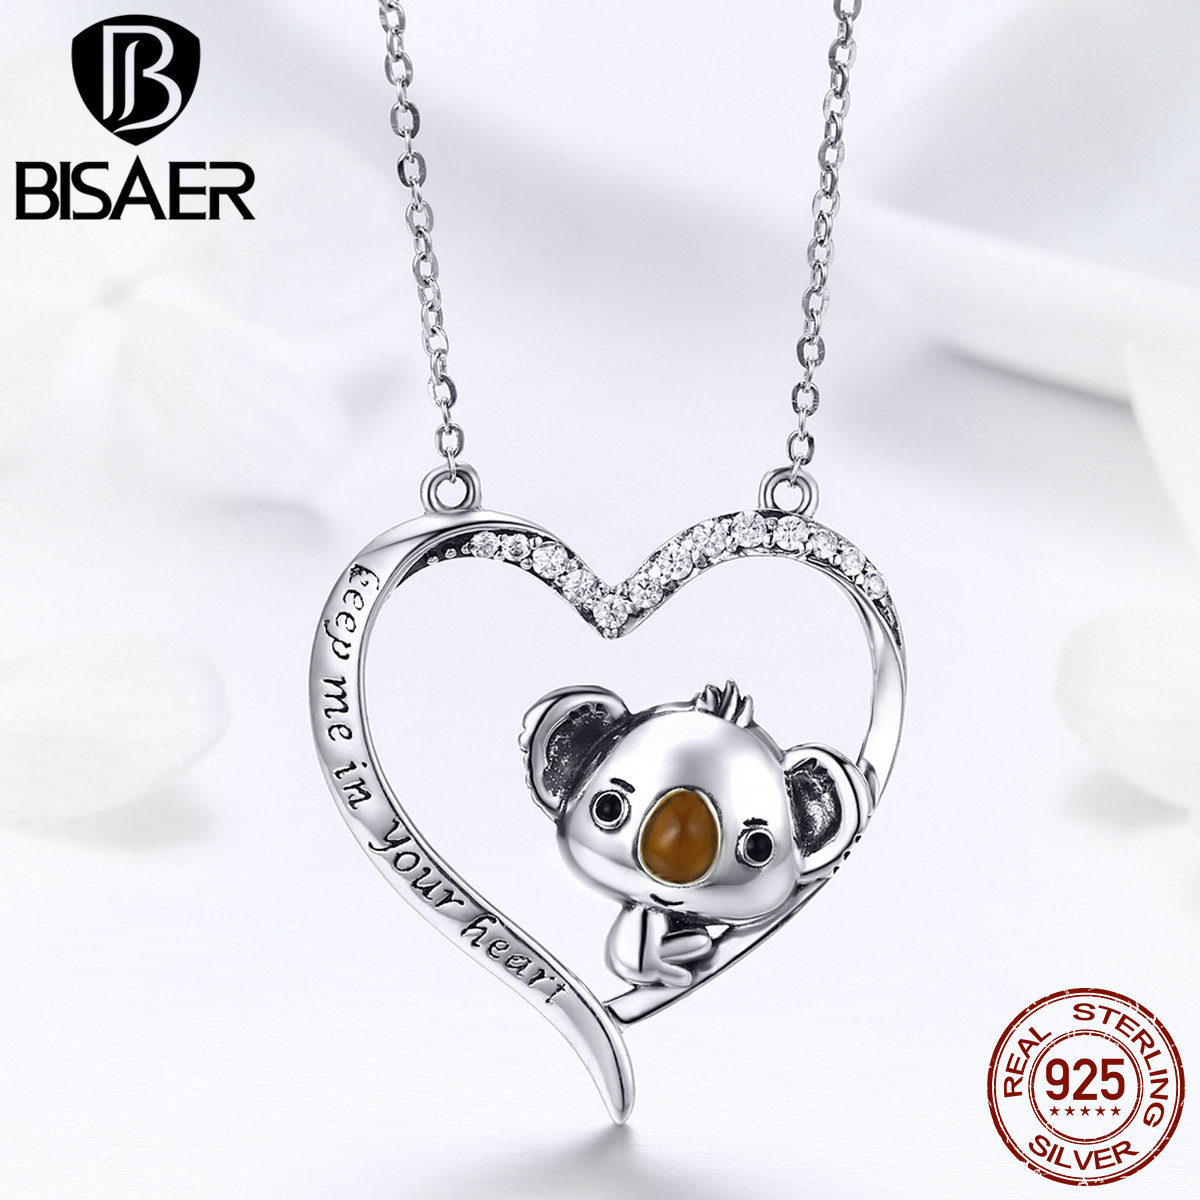 Authentic 925 Sterling Silver Little <font><b>Bear</b></font> <font><b>Koala</b></font> in Heart Shape Girls Pendant Necklaces Women Collar 925 Silver <font><b>Jewelry</b></font> ECN256 image